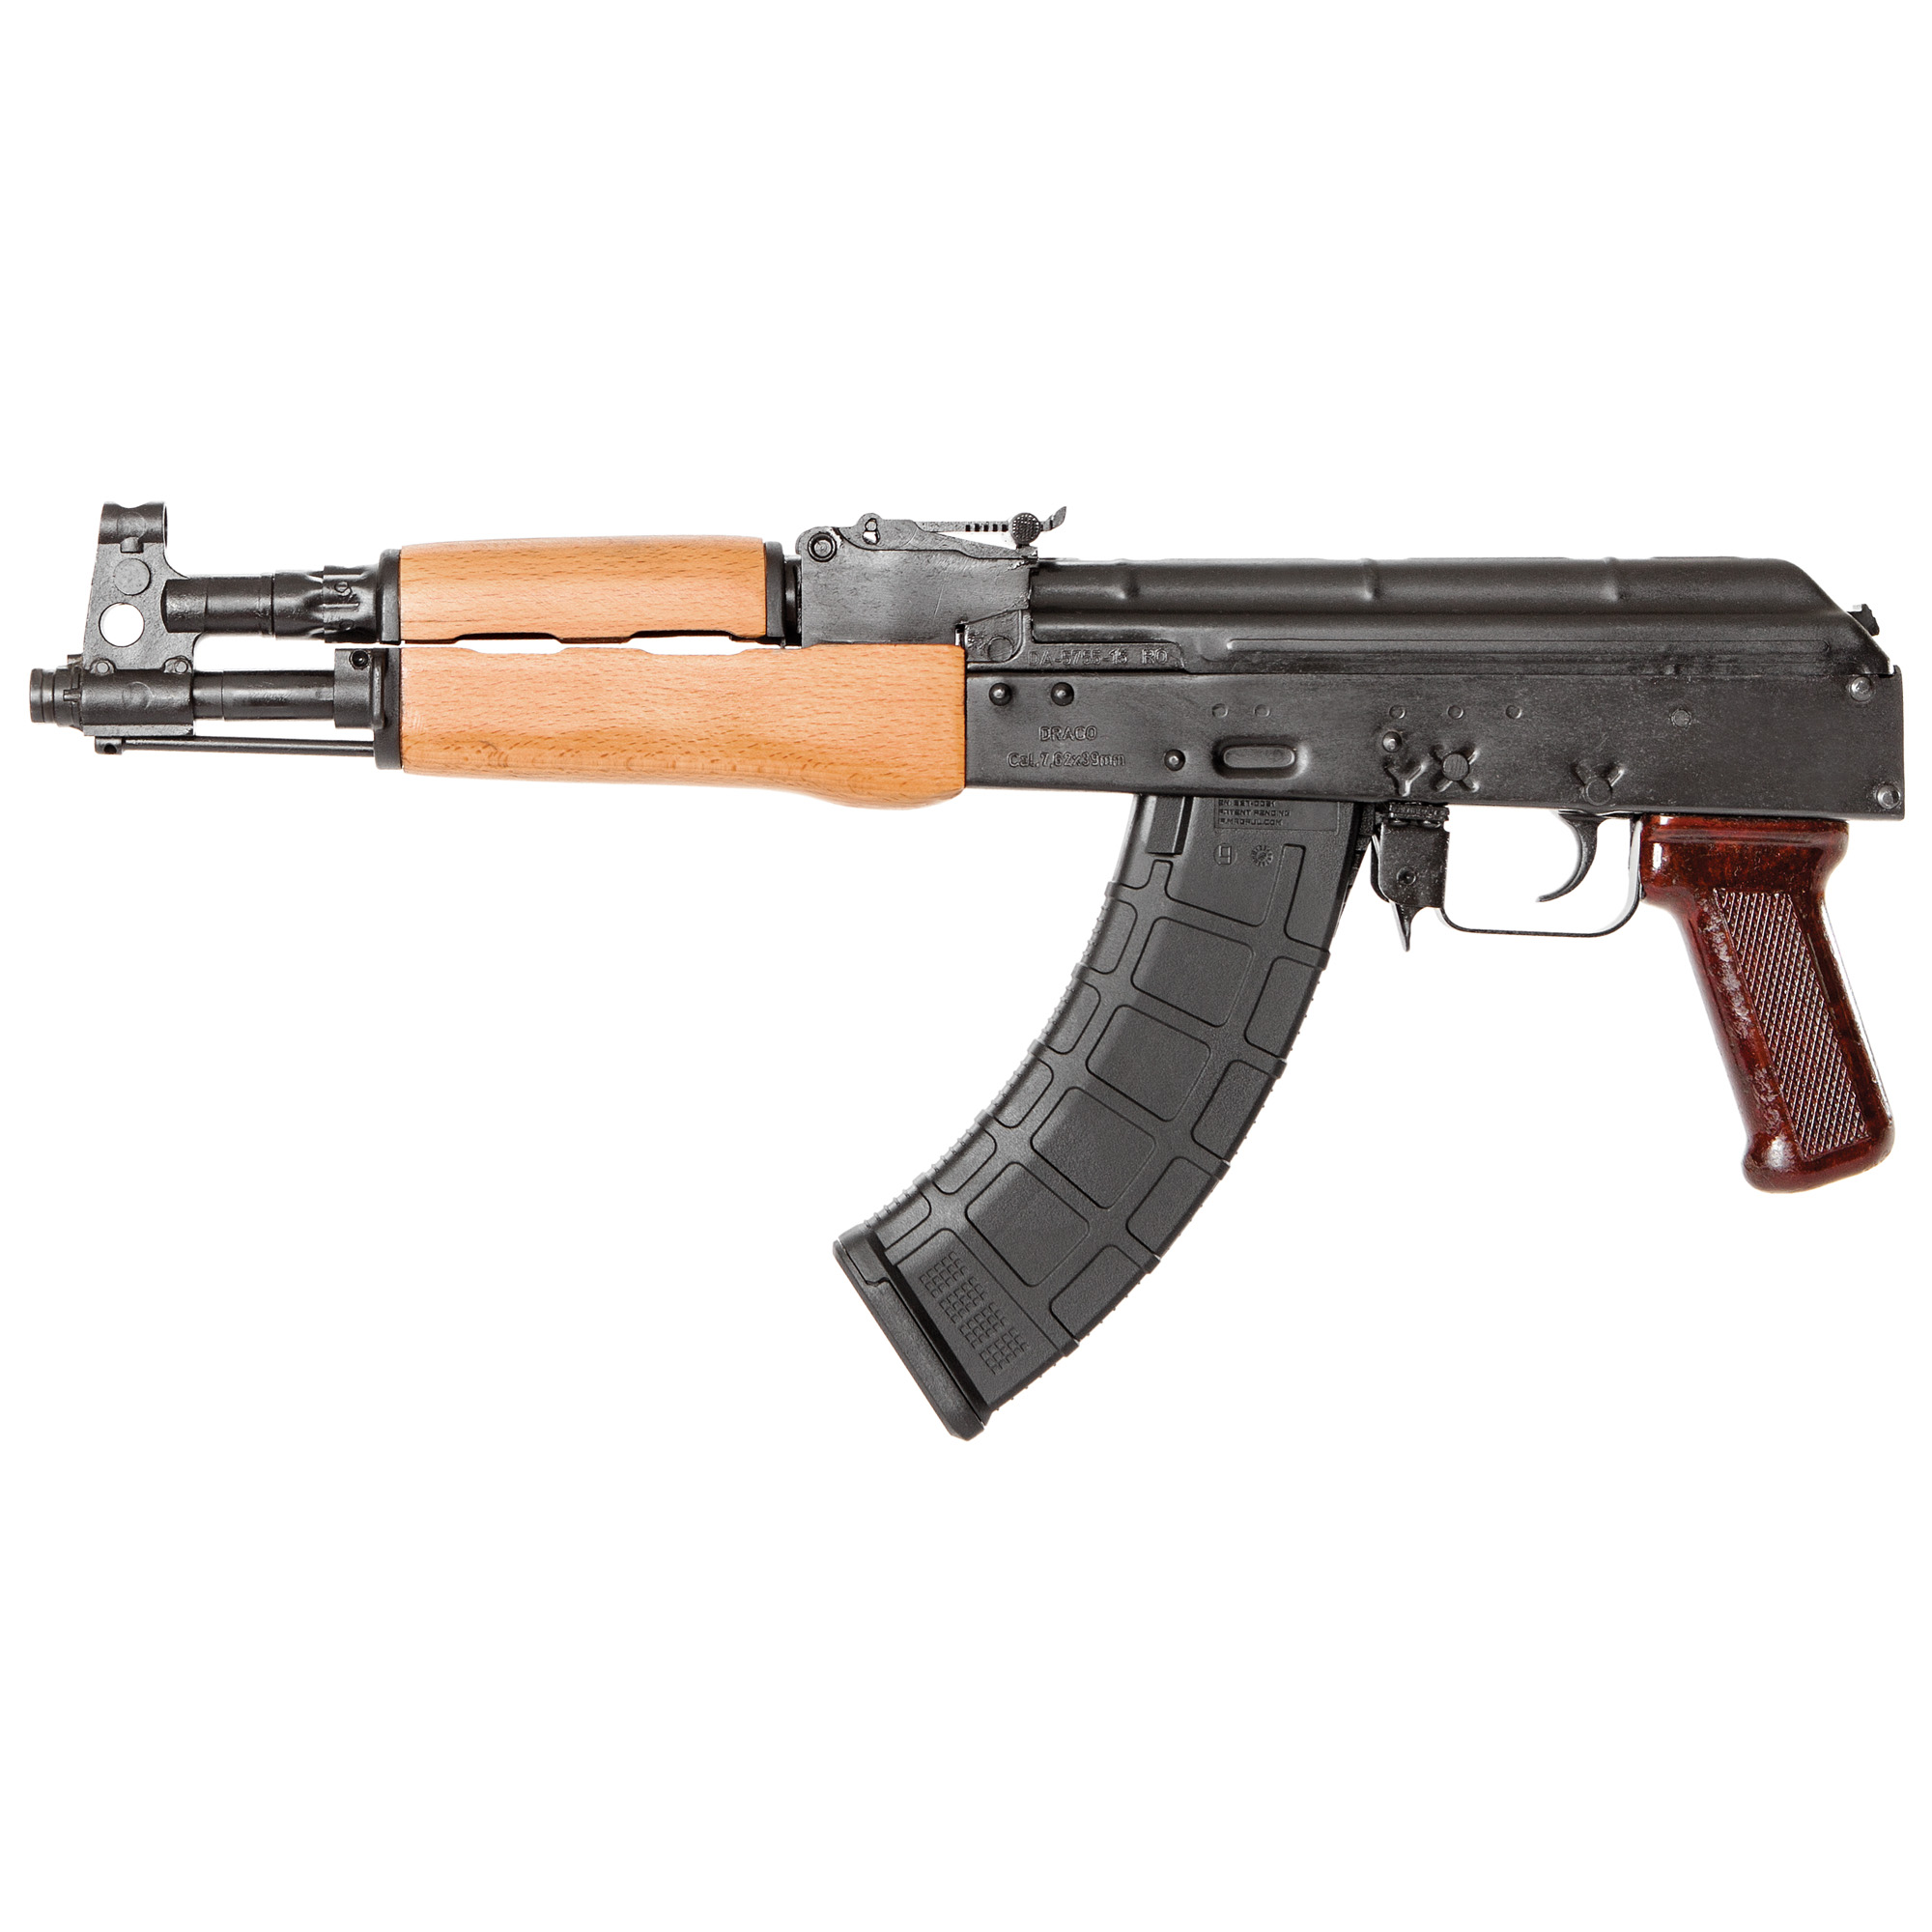 """The Century Arms Draco features a stamped receiver"""" 14x1 left hand threaded barrel and it accepts all standard AK magazines."""